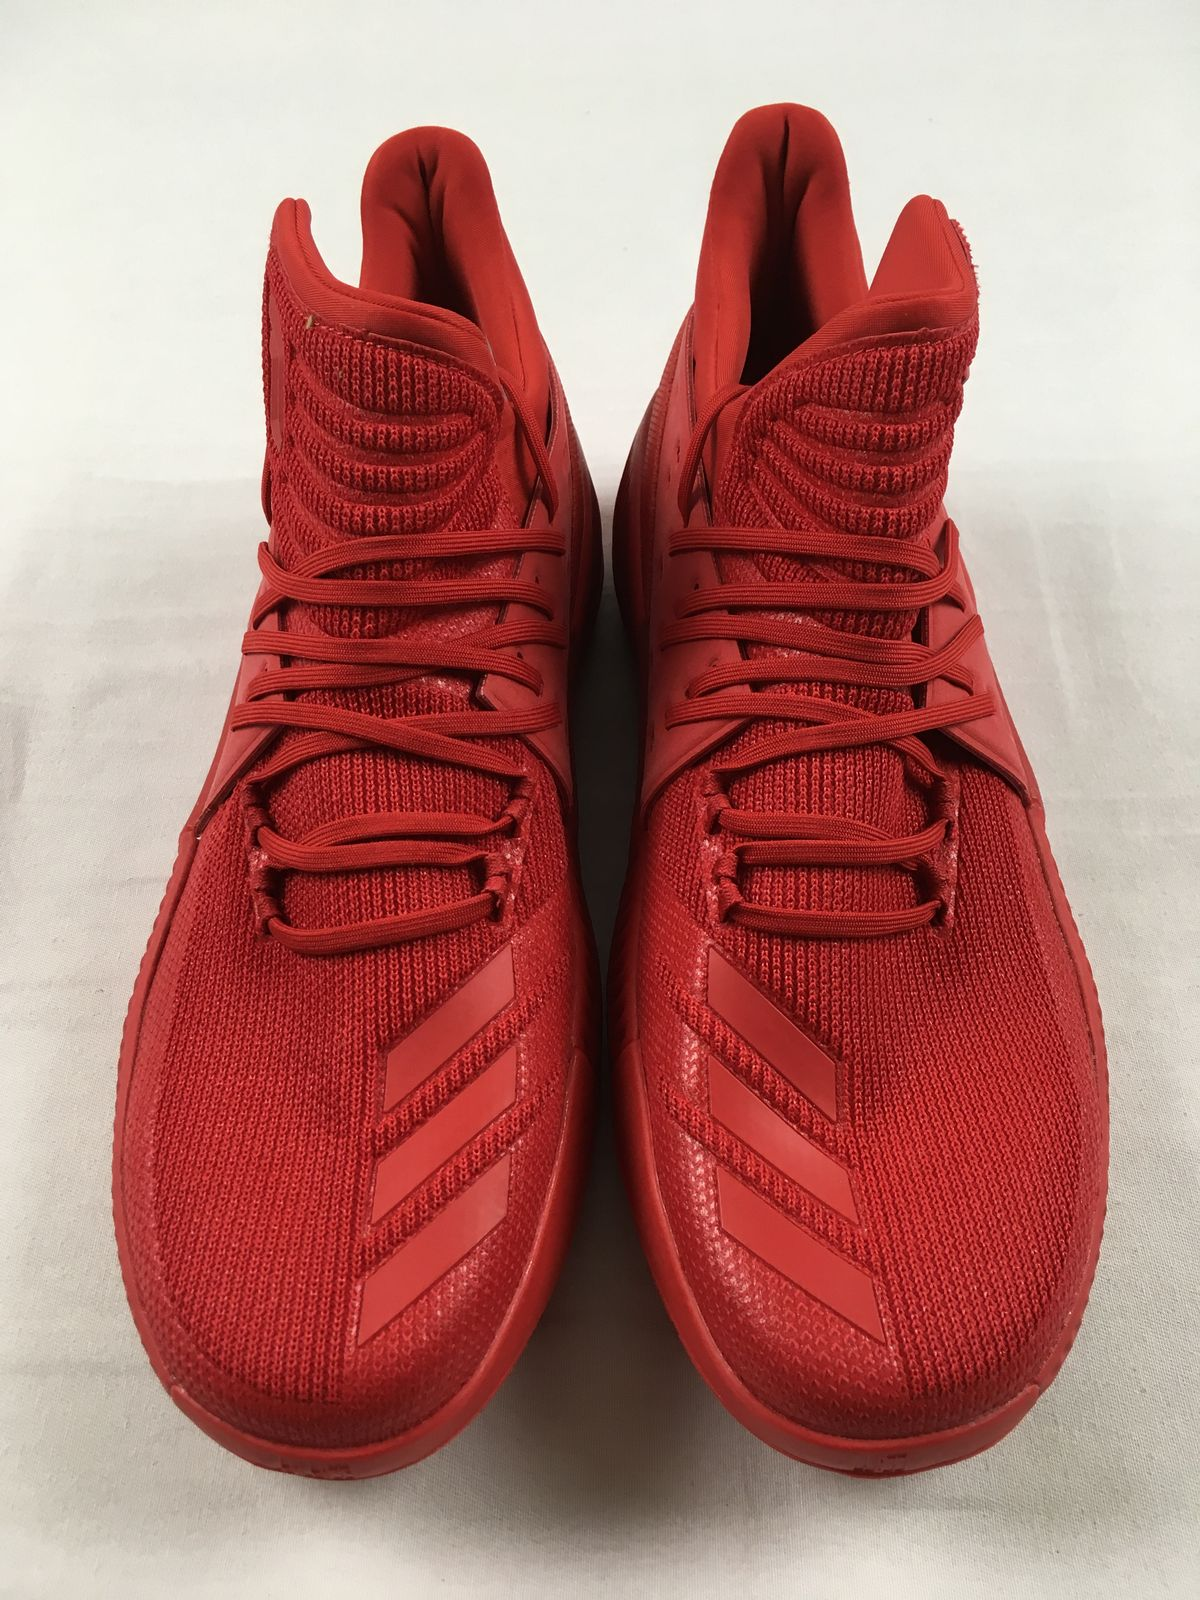 online store 64f15 af767 ... italy new adidas d lillard red basketball shoes mens multiple sizes  454ec 777b8